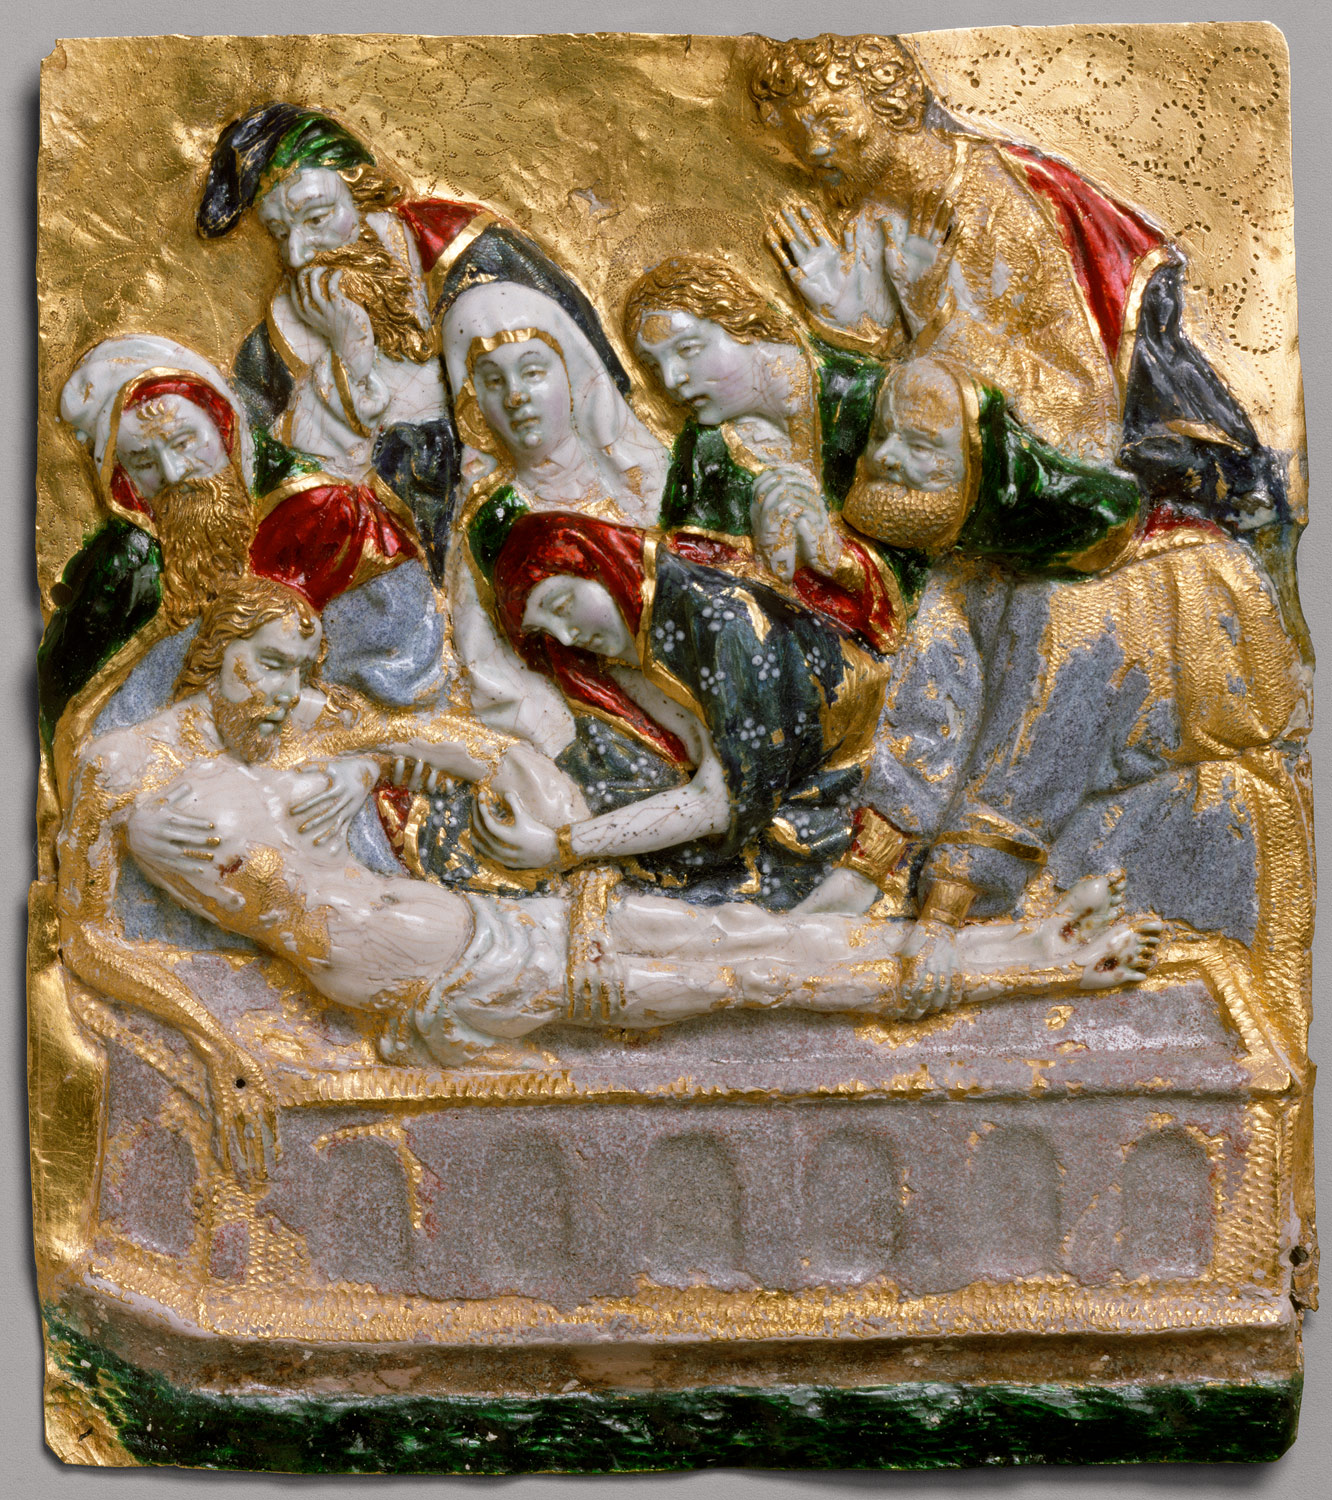 art and death in the middle ages essay heilbrunn timeline of the entombment of christ